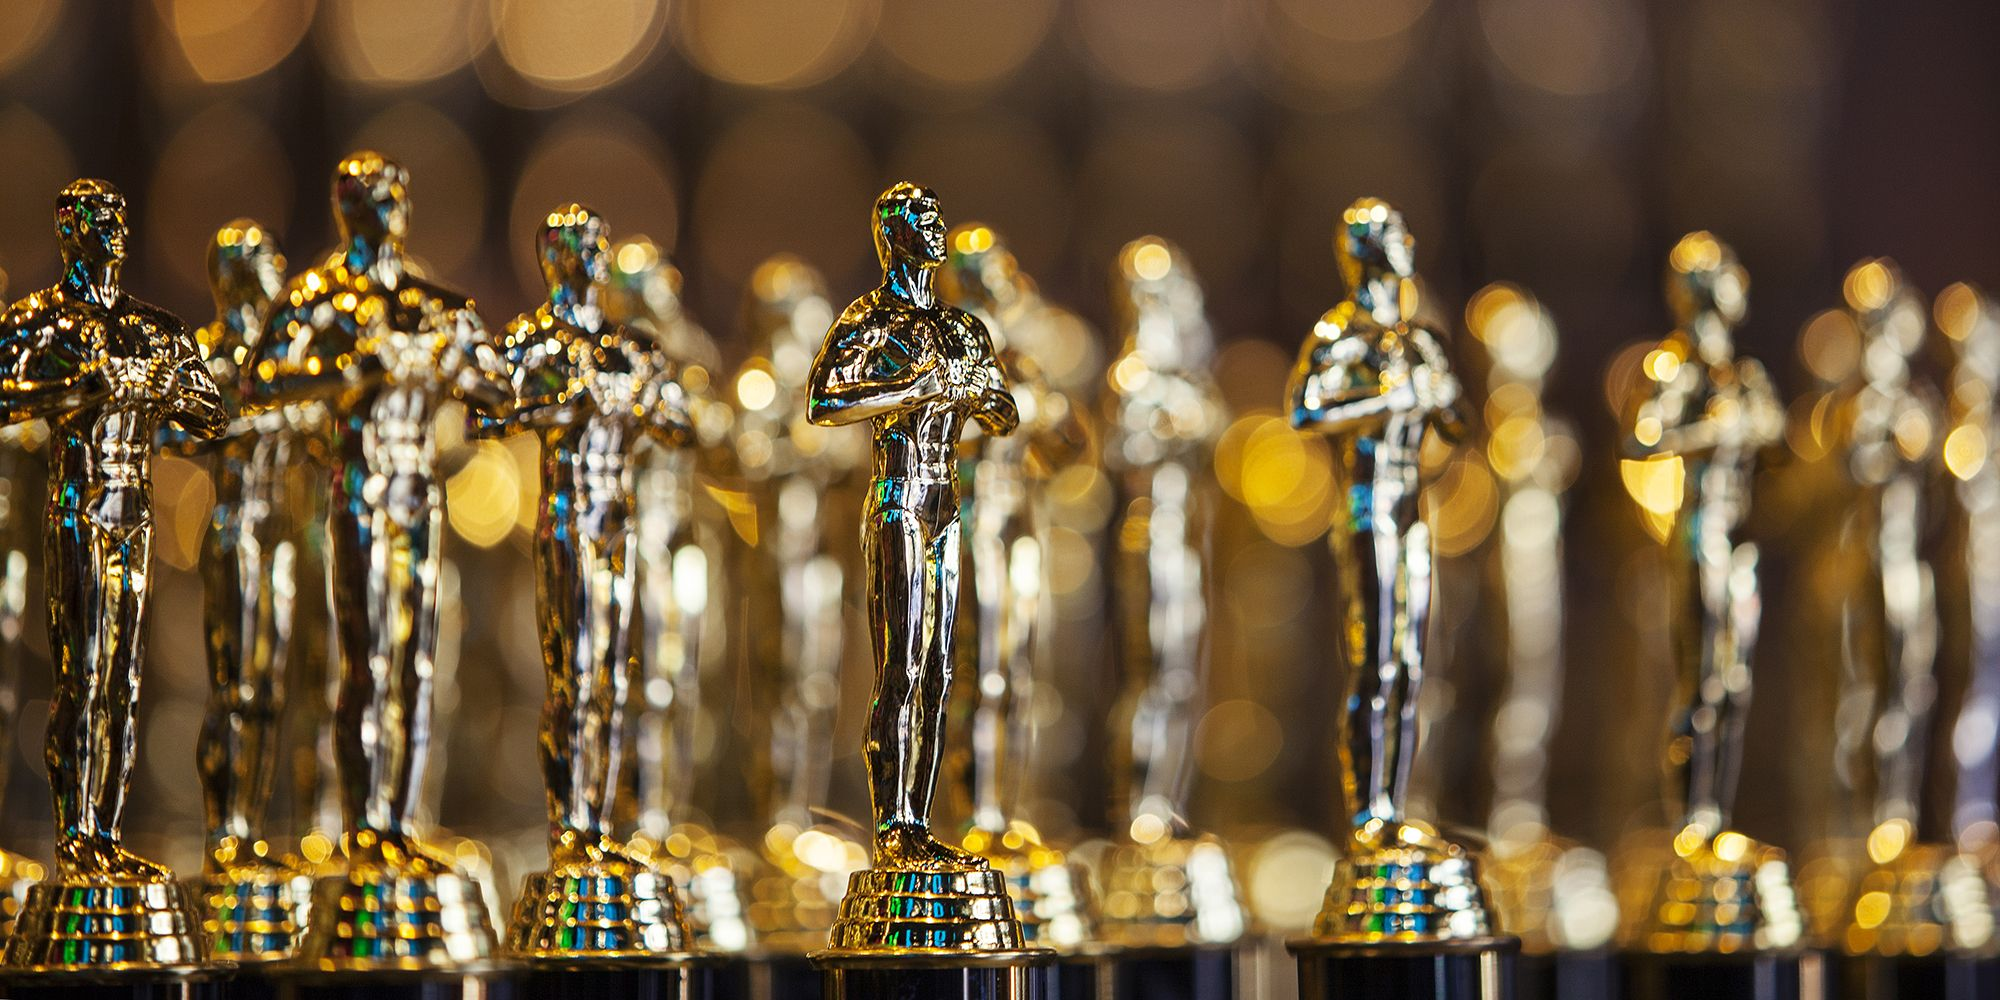 The Oscars - how to watch the Academy Awards 2019 in the UK